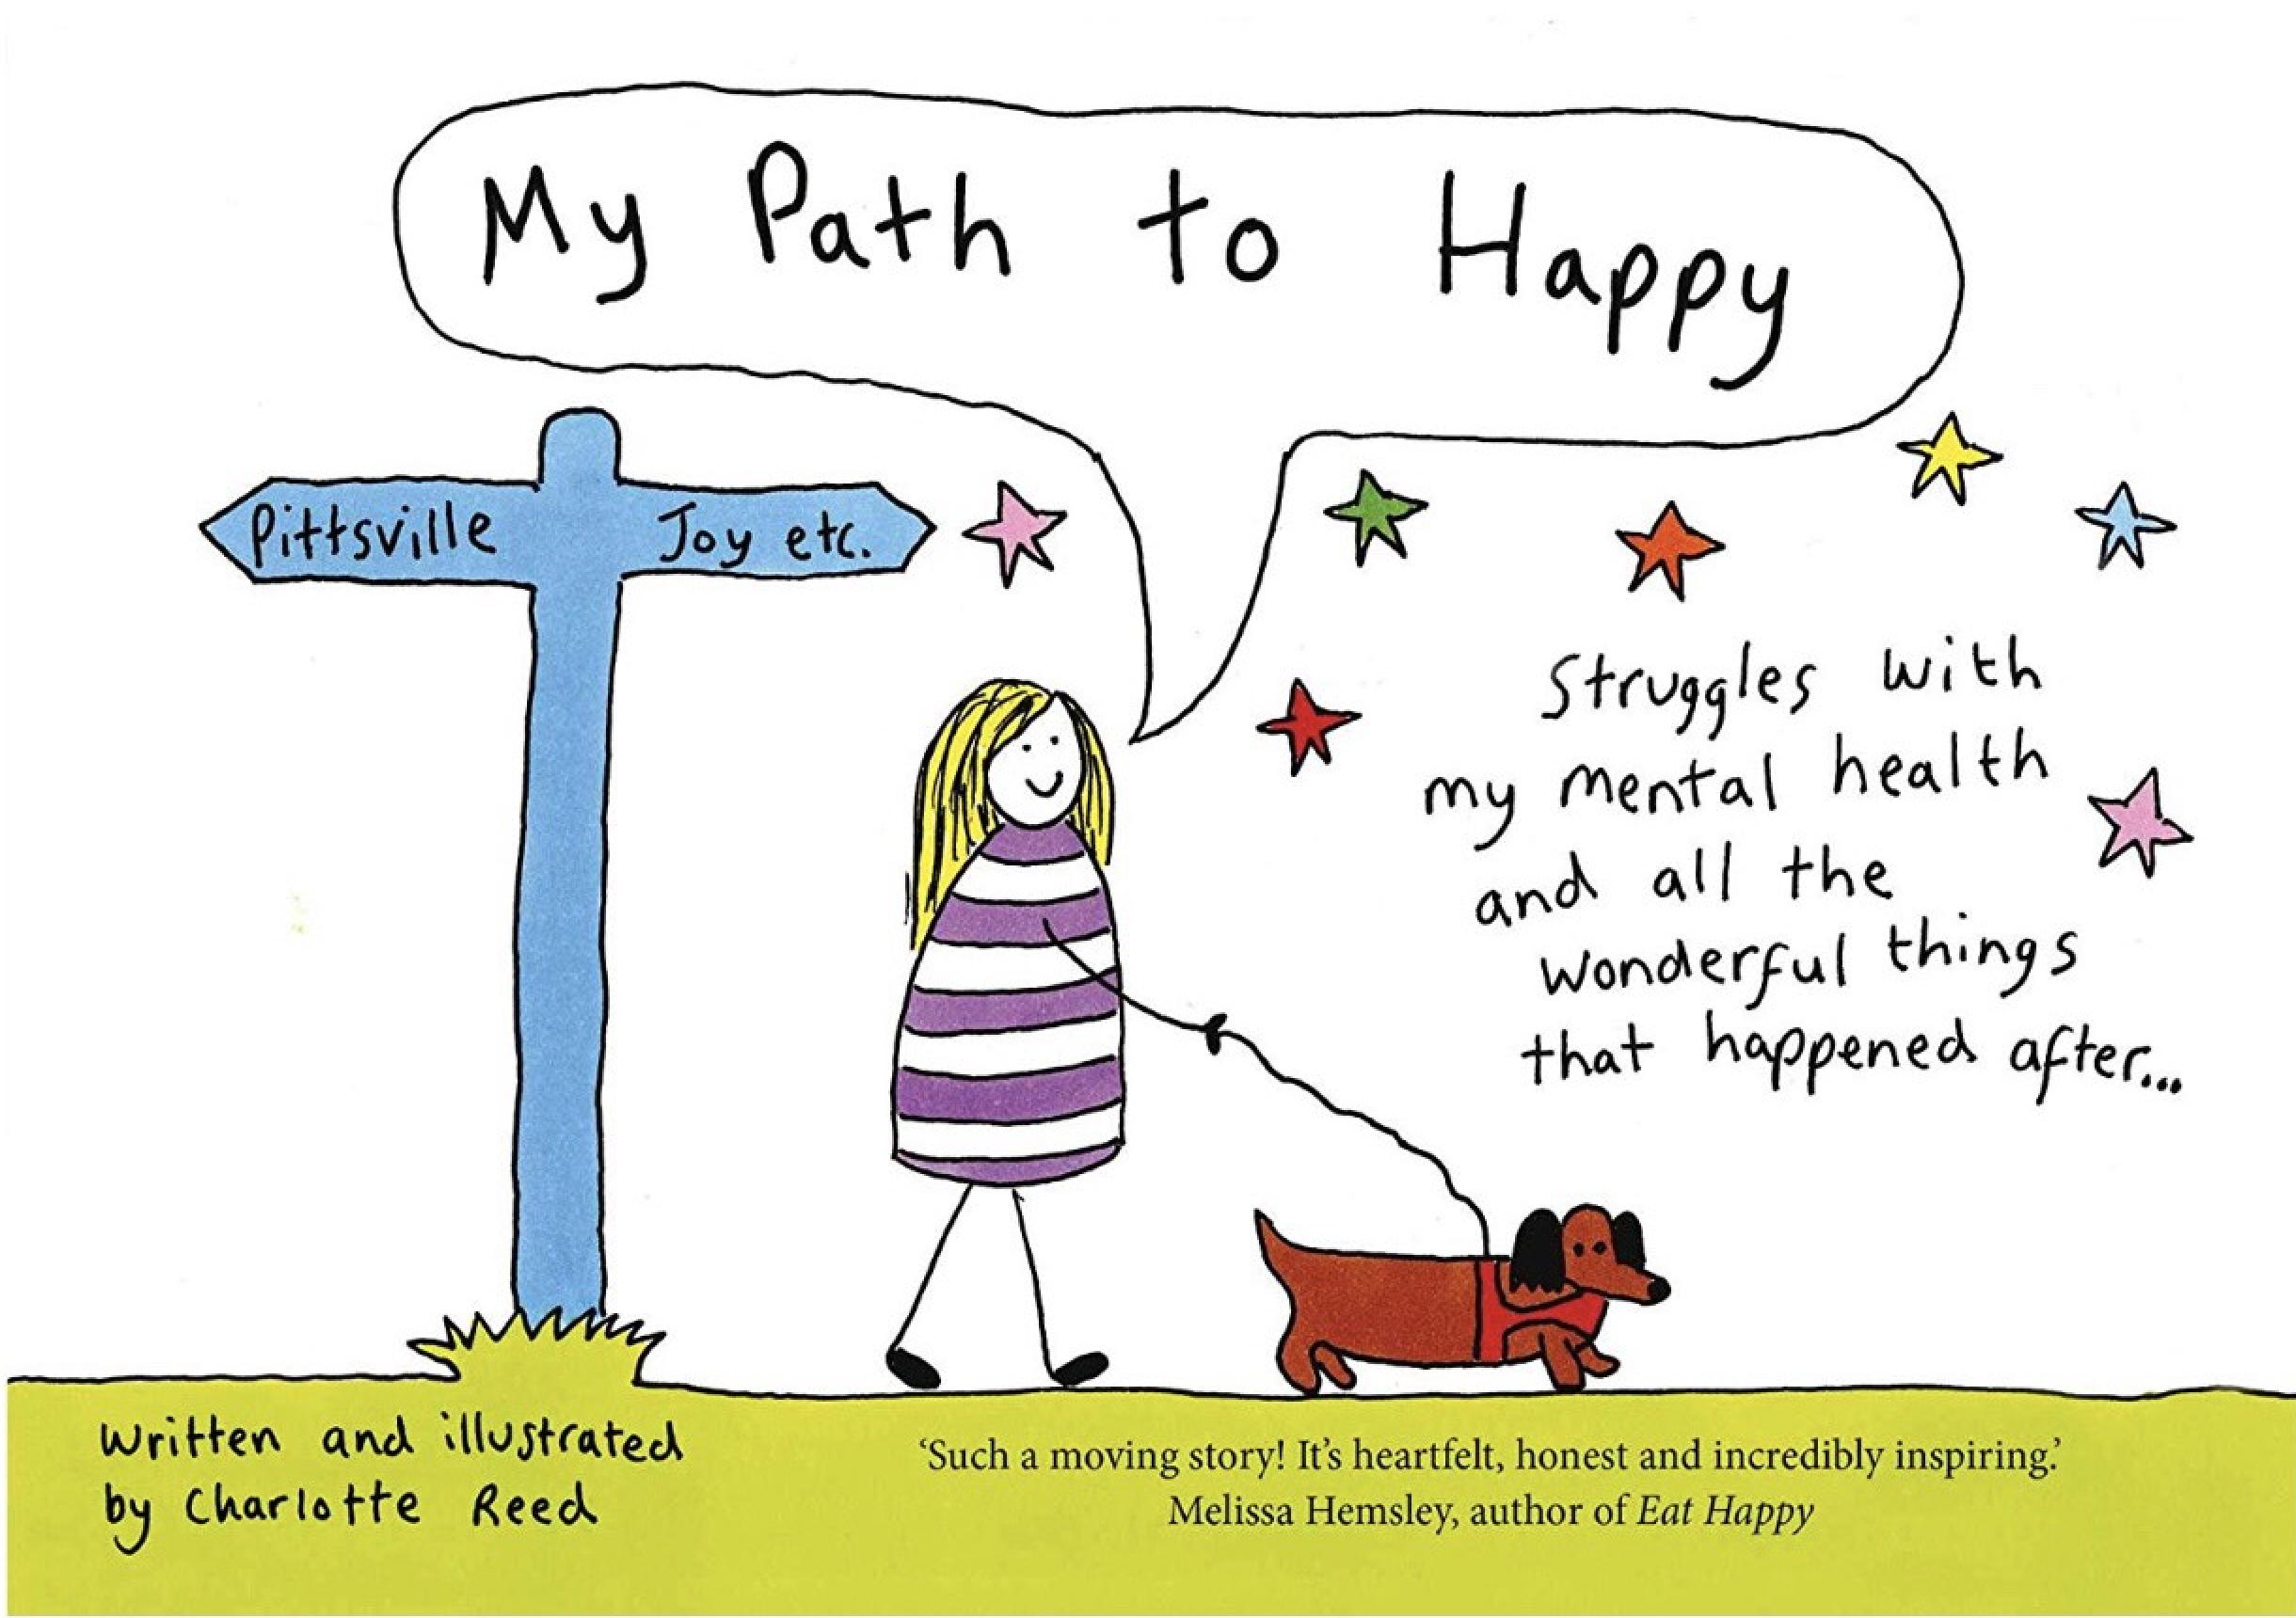 Above: Charlotte Reed's second book, My Path to Happy has just been published by Simon and Schuster. There is interest in making a film based on her experiences.